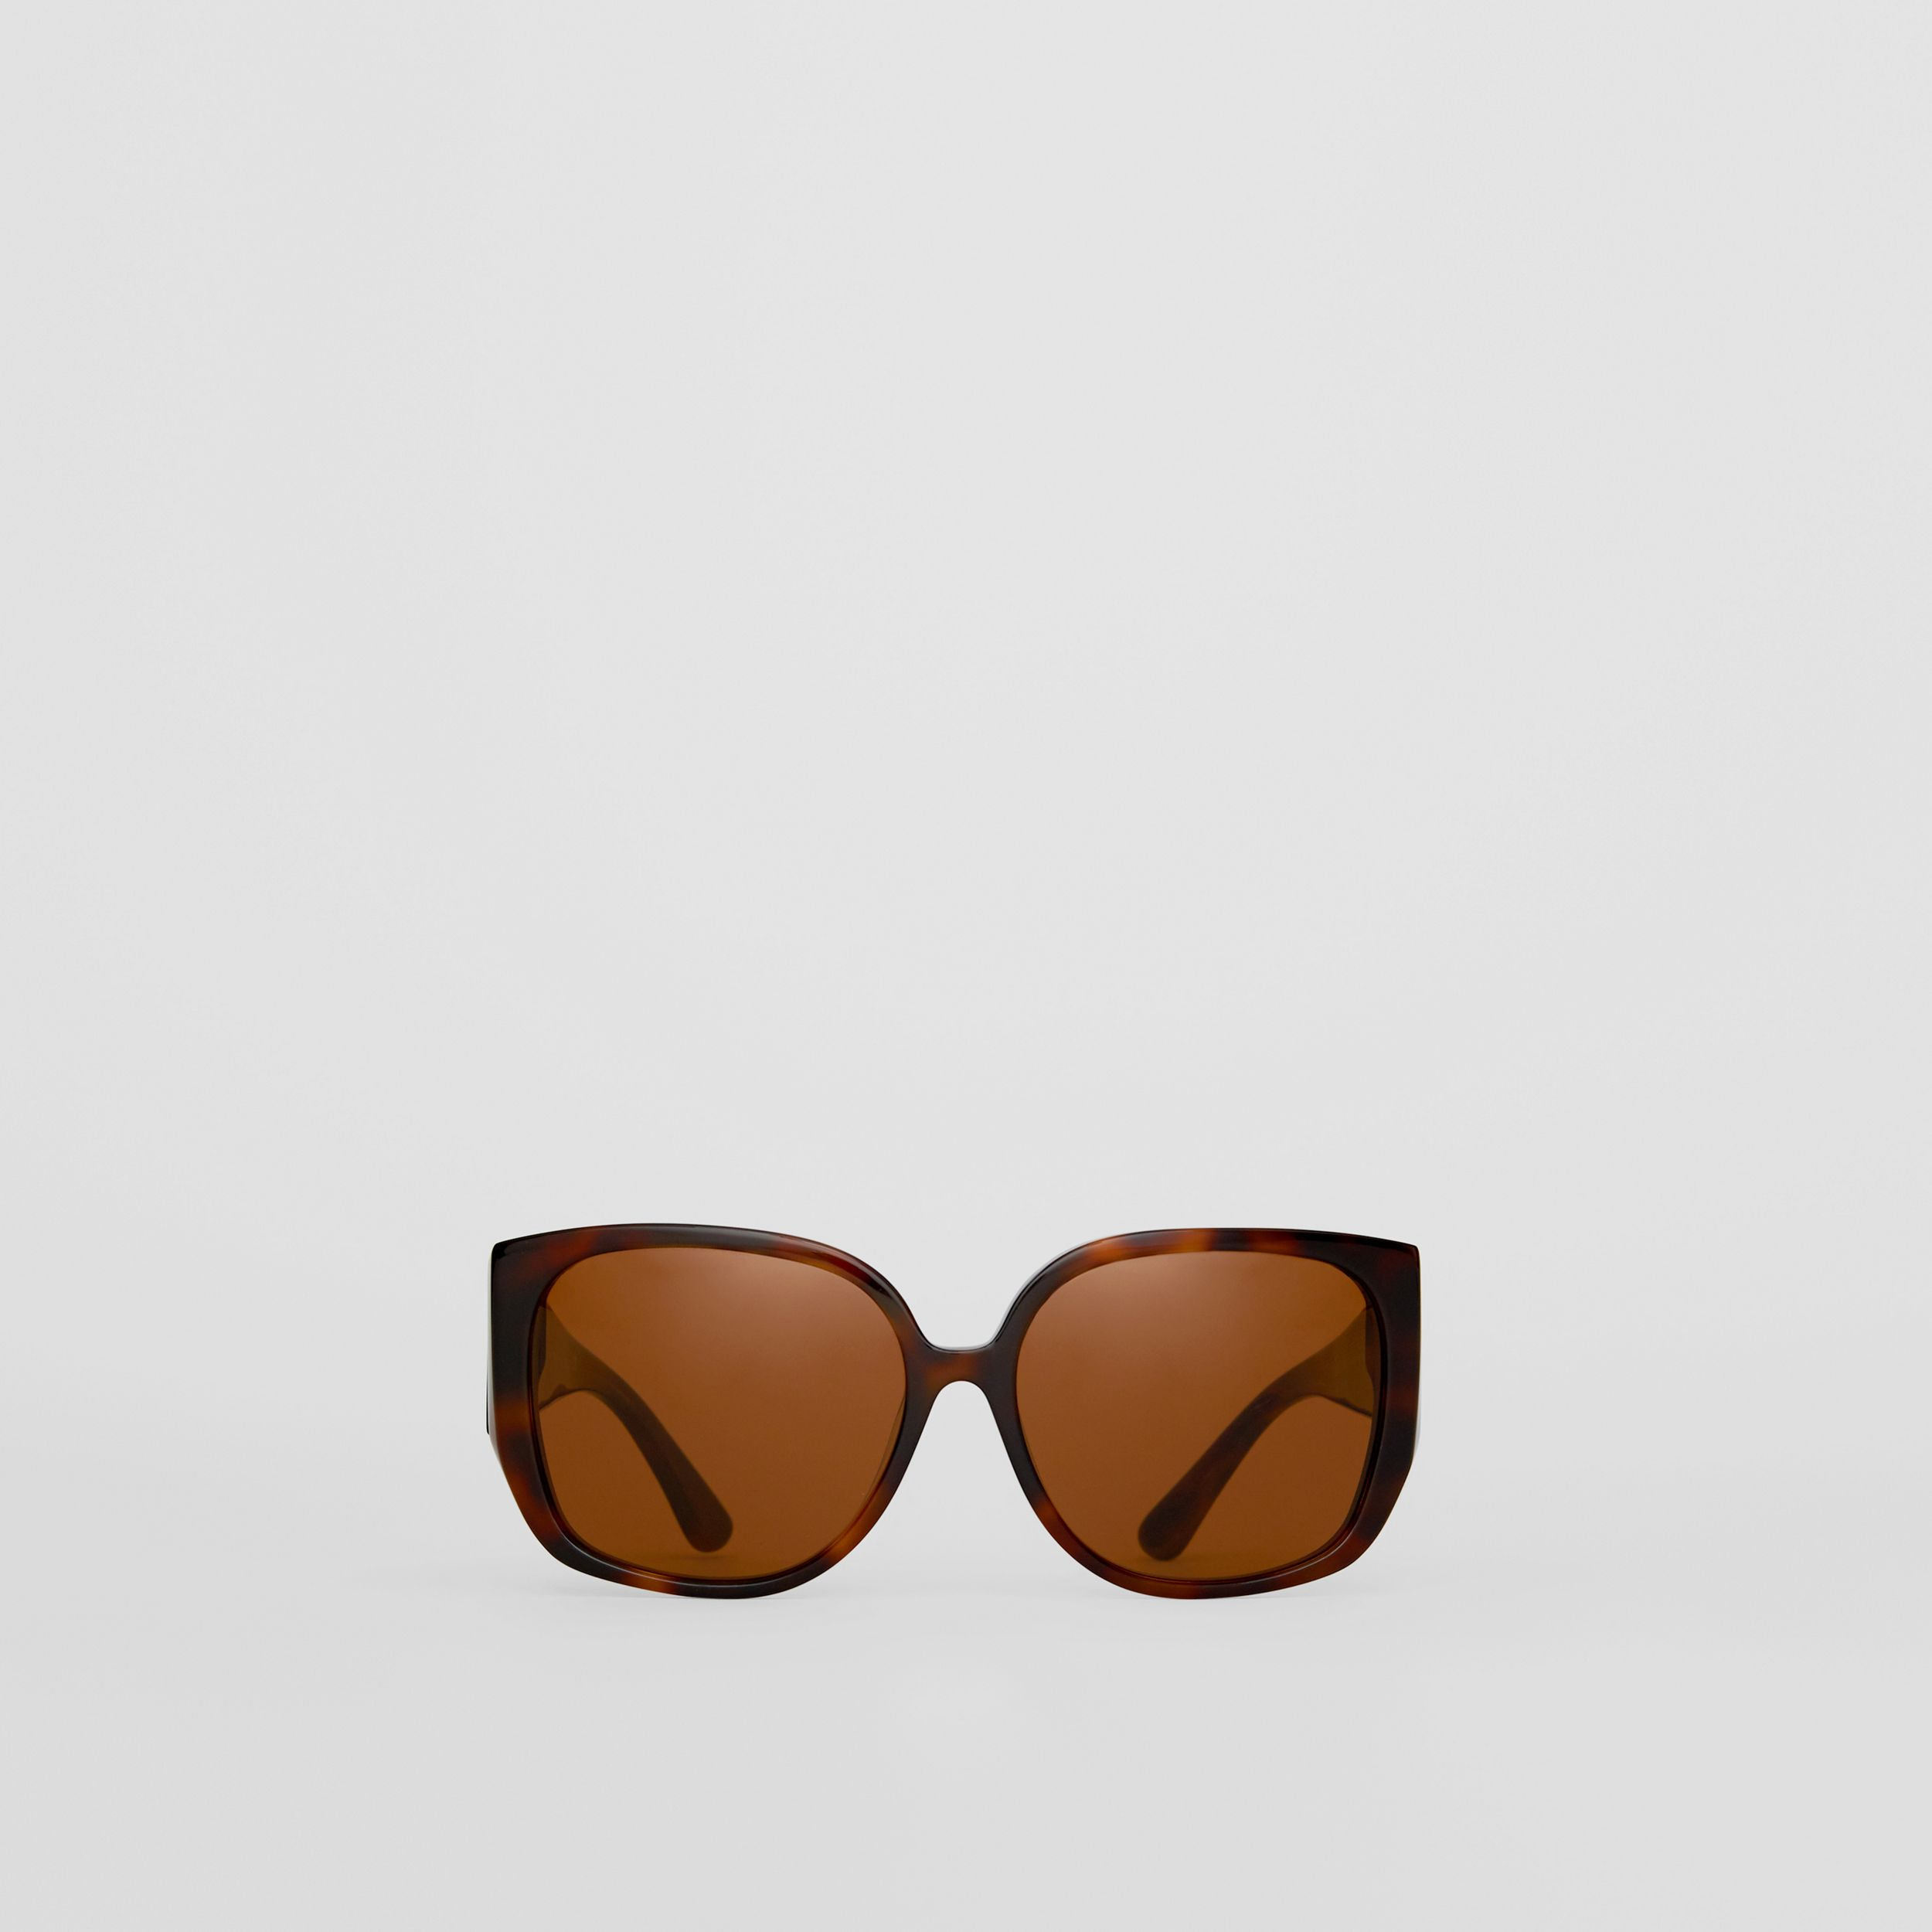 Oversized Butterfly Frame Sunglasses in Tortoiseshell - Women | Burberry United States - 1